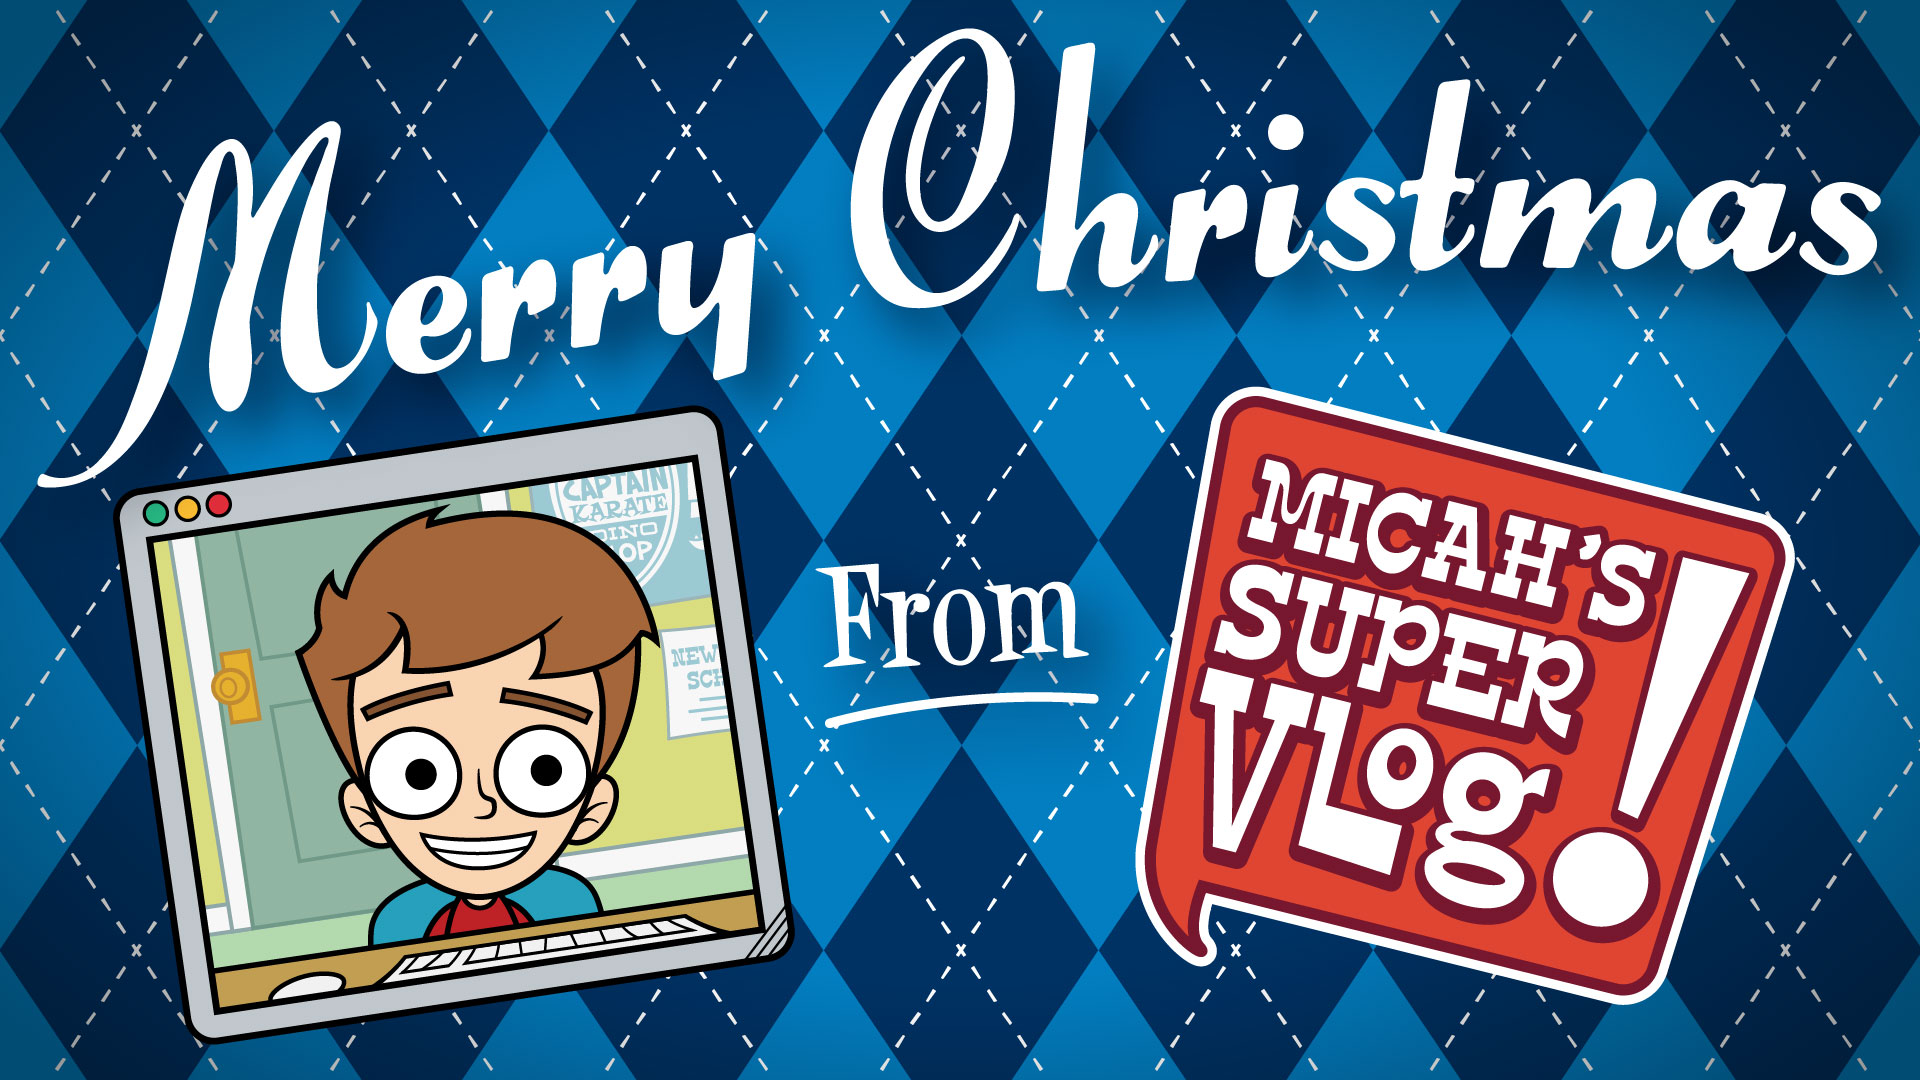 Msv merry christmas preview image